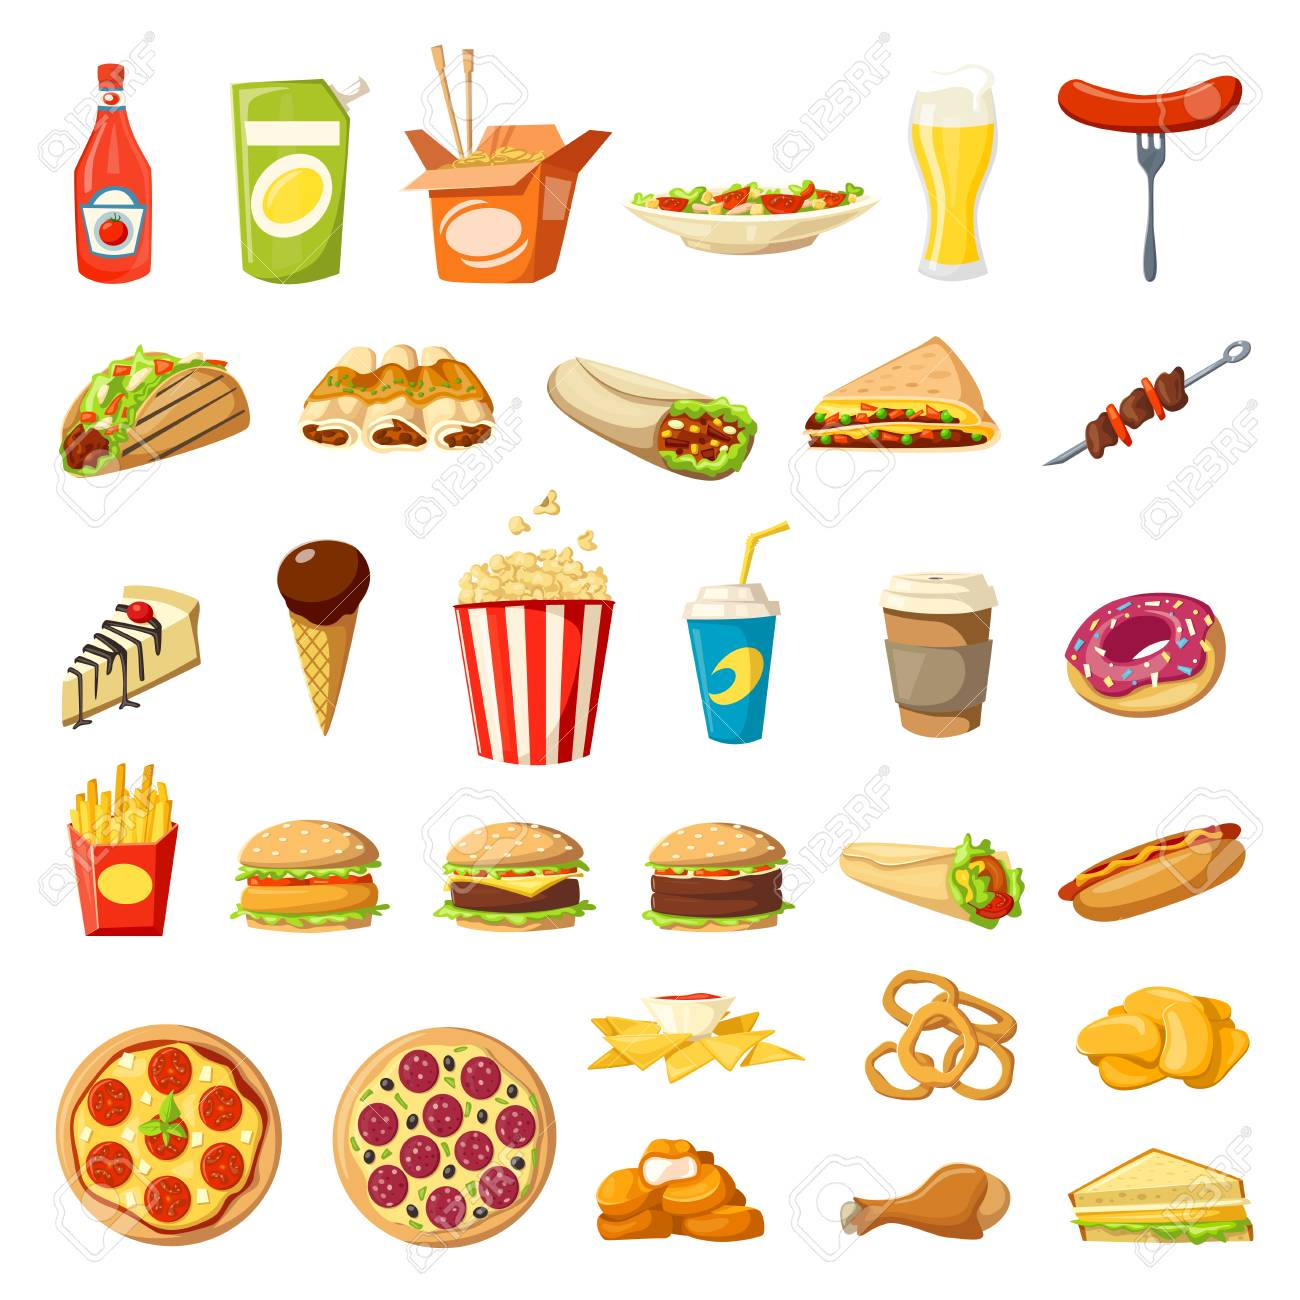 Vector Fast food icons isolated burgers sandwiches - 87339471